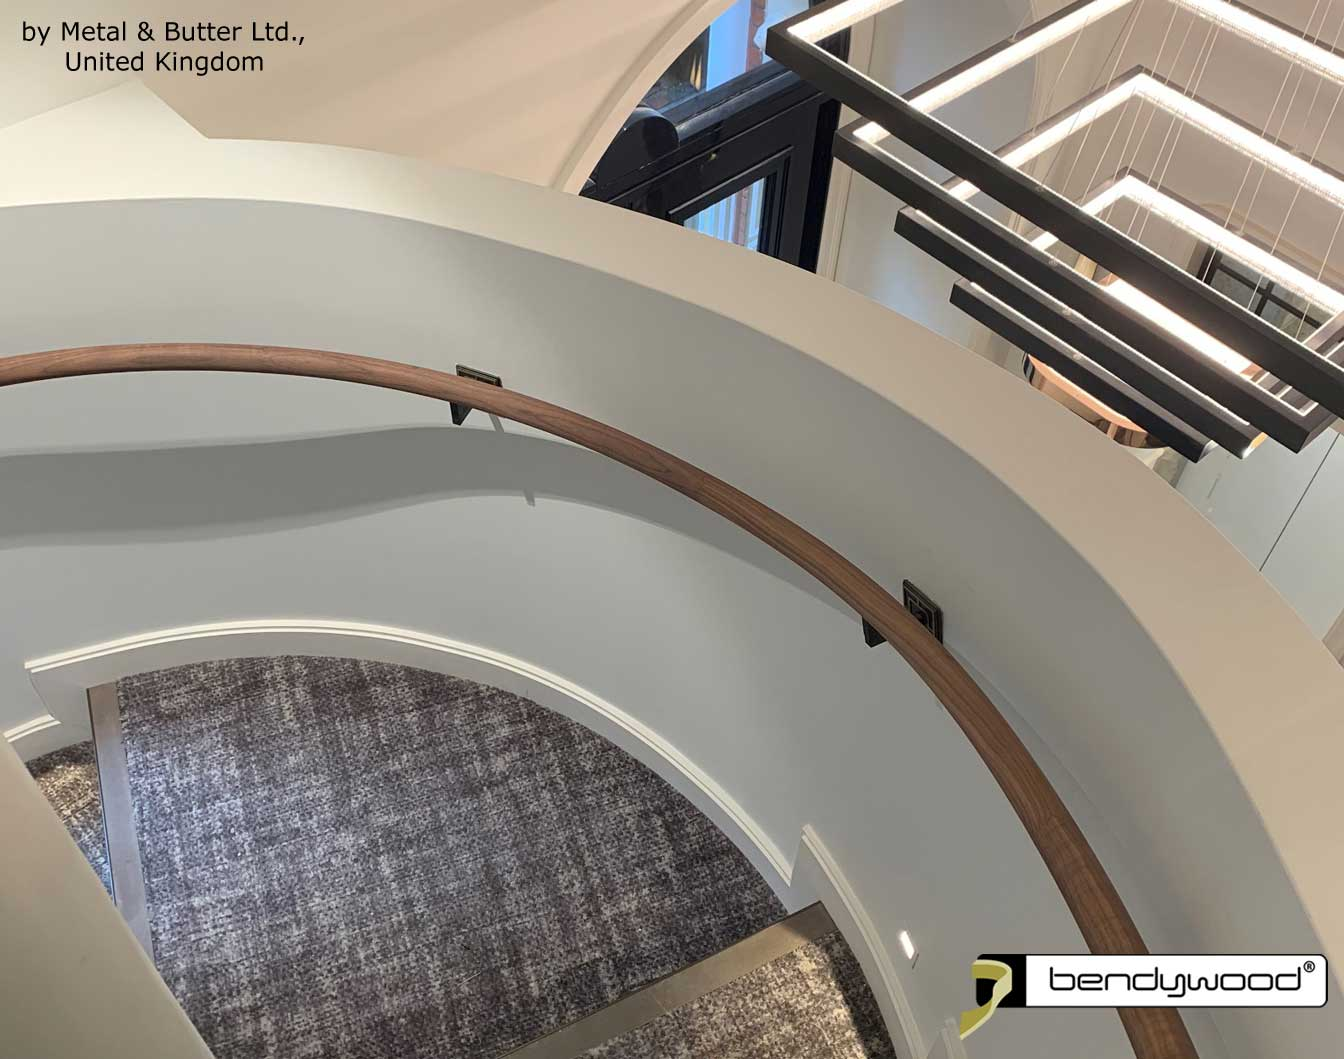 Bending wood Bendywood® - curved solid wooden handrail